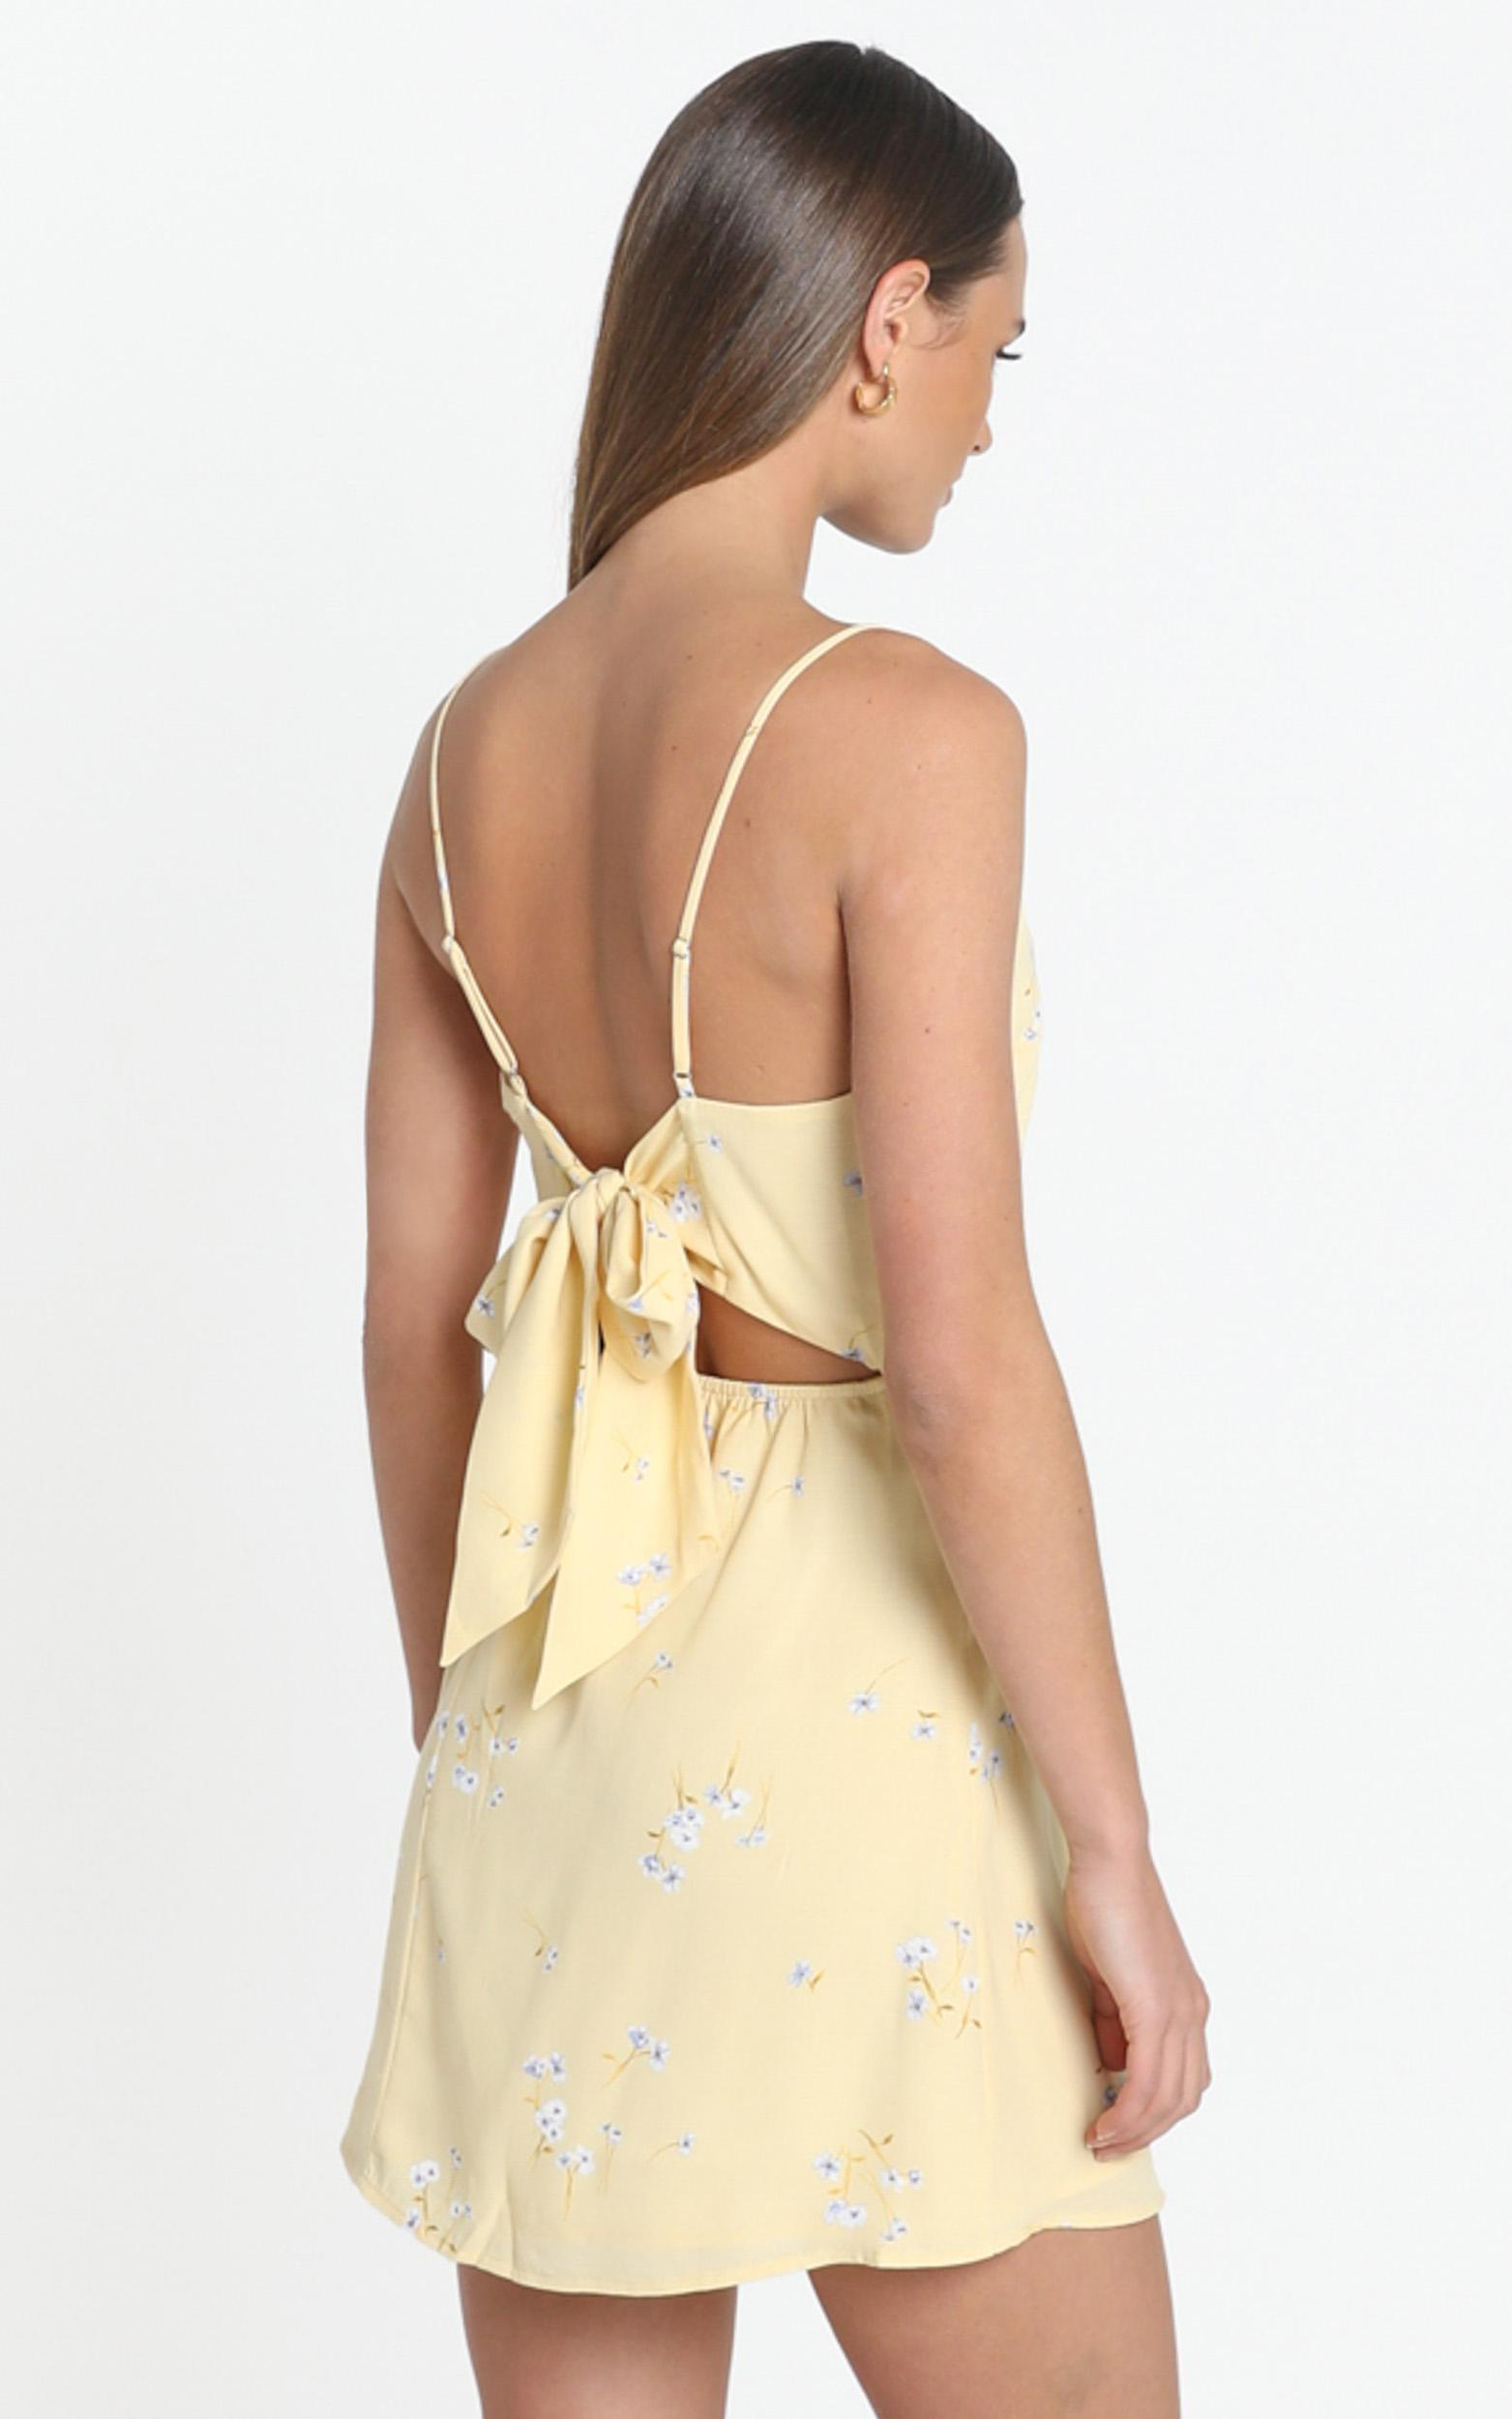 Ramona Dress in yellow floral - 8 (S), Yellow, hi-res image number null